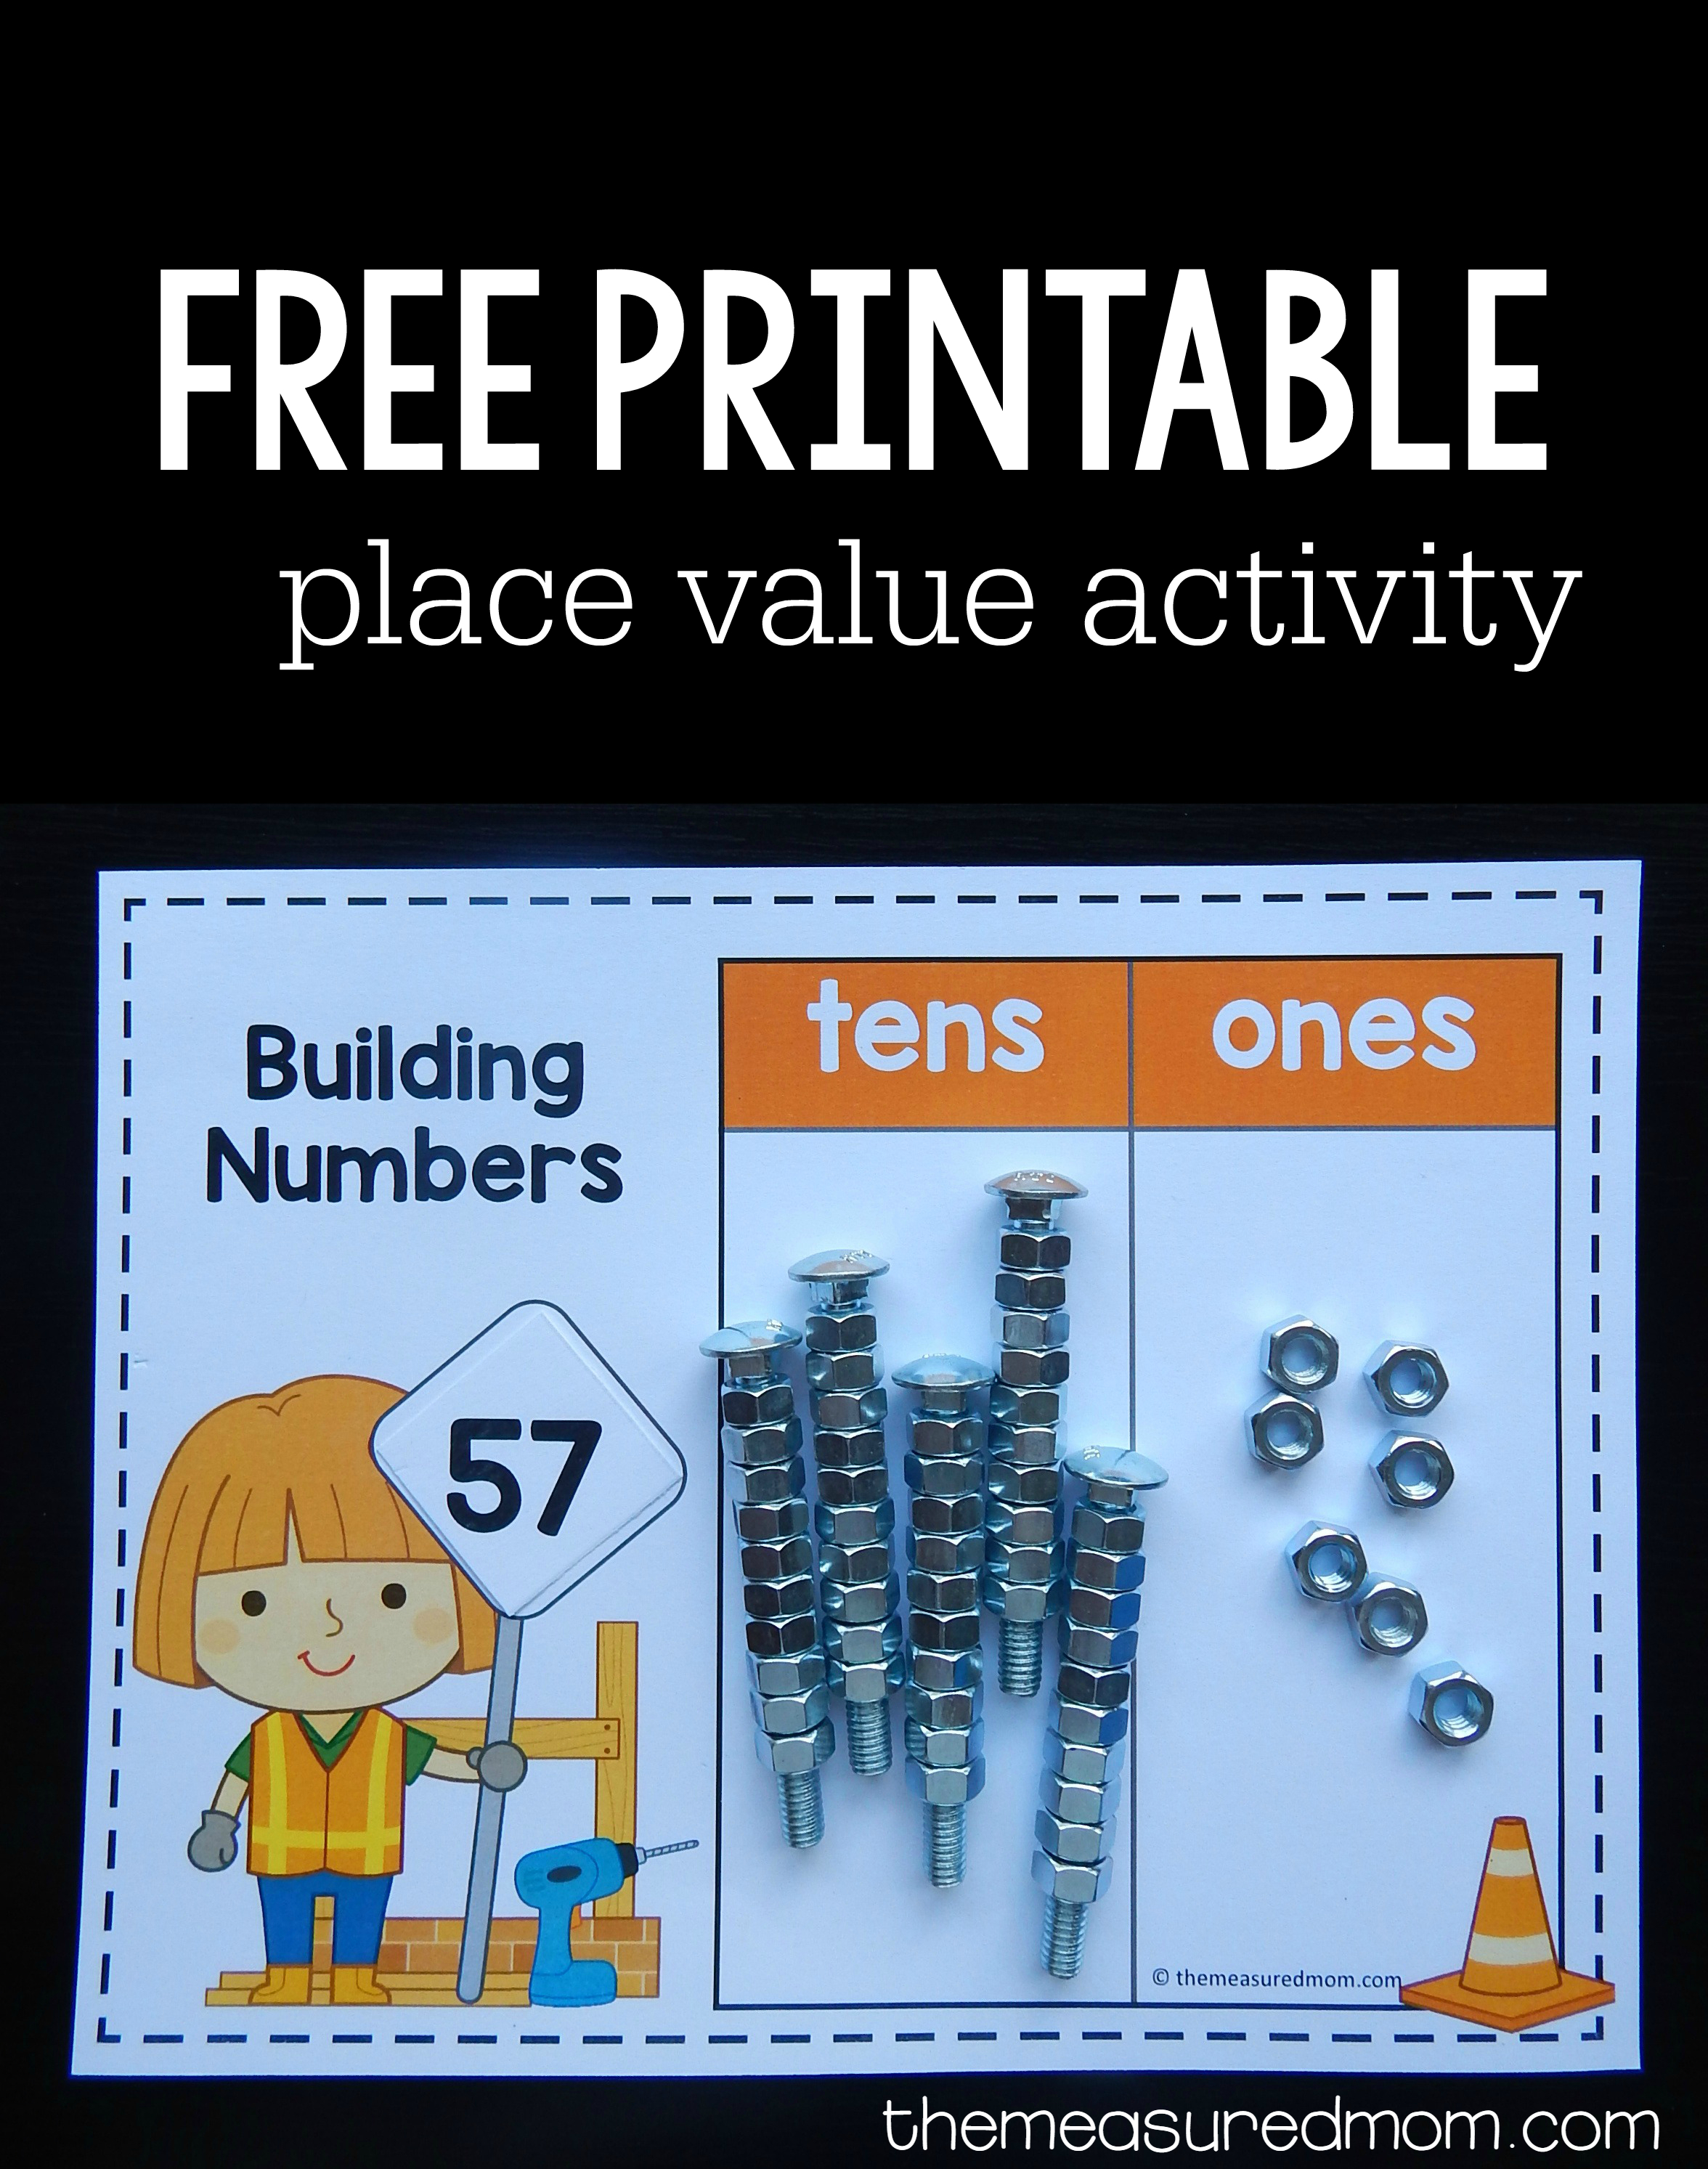 Free Place Value Games For K-2 - The Measured Mom - Place Value Game Printable Free